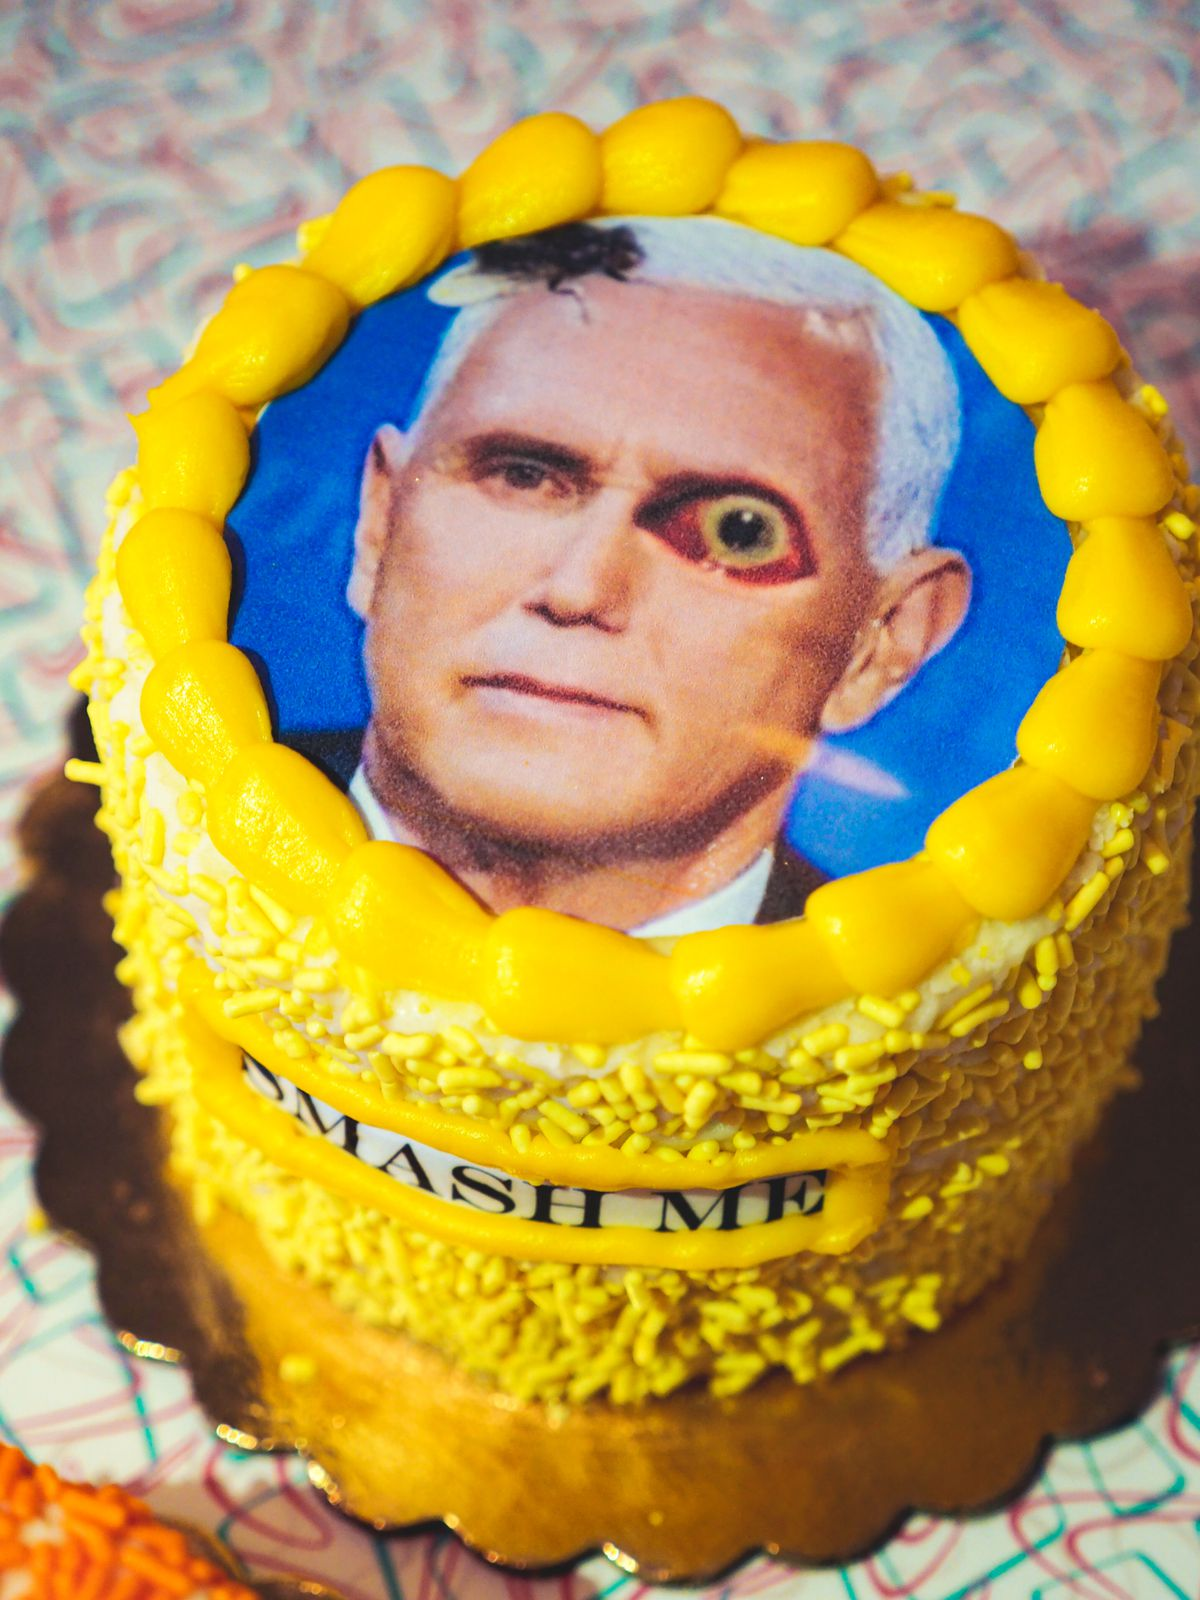 A cake decorated with Mike Pence's photo.